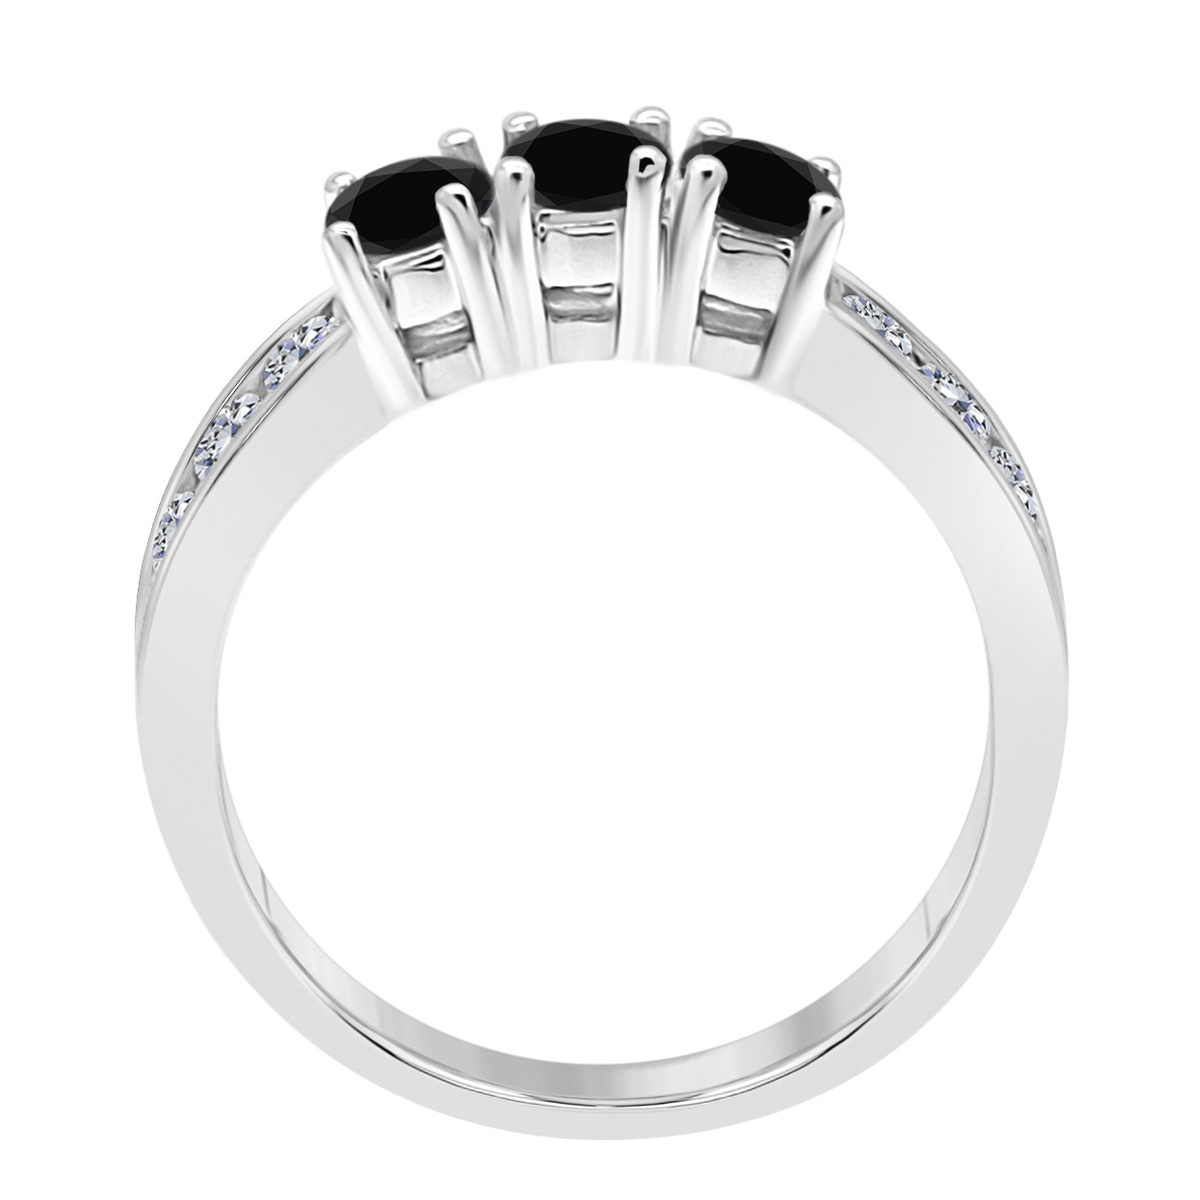 Black Three Stone And Natural Round White Diamond sets for girls or Women Black diamond Seniors Round Solid 10k 4 Prong-Setting this is the lovely gift for anniversary